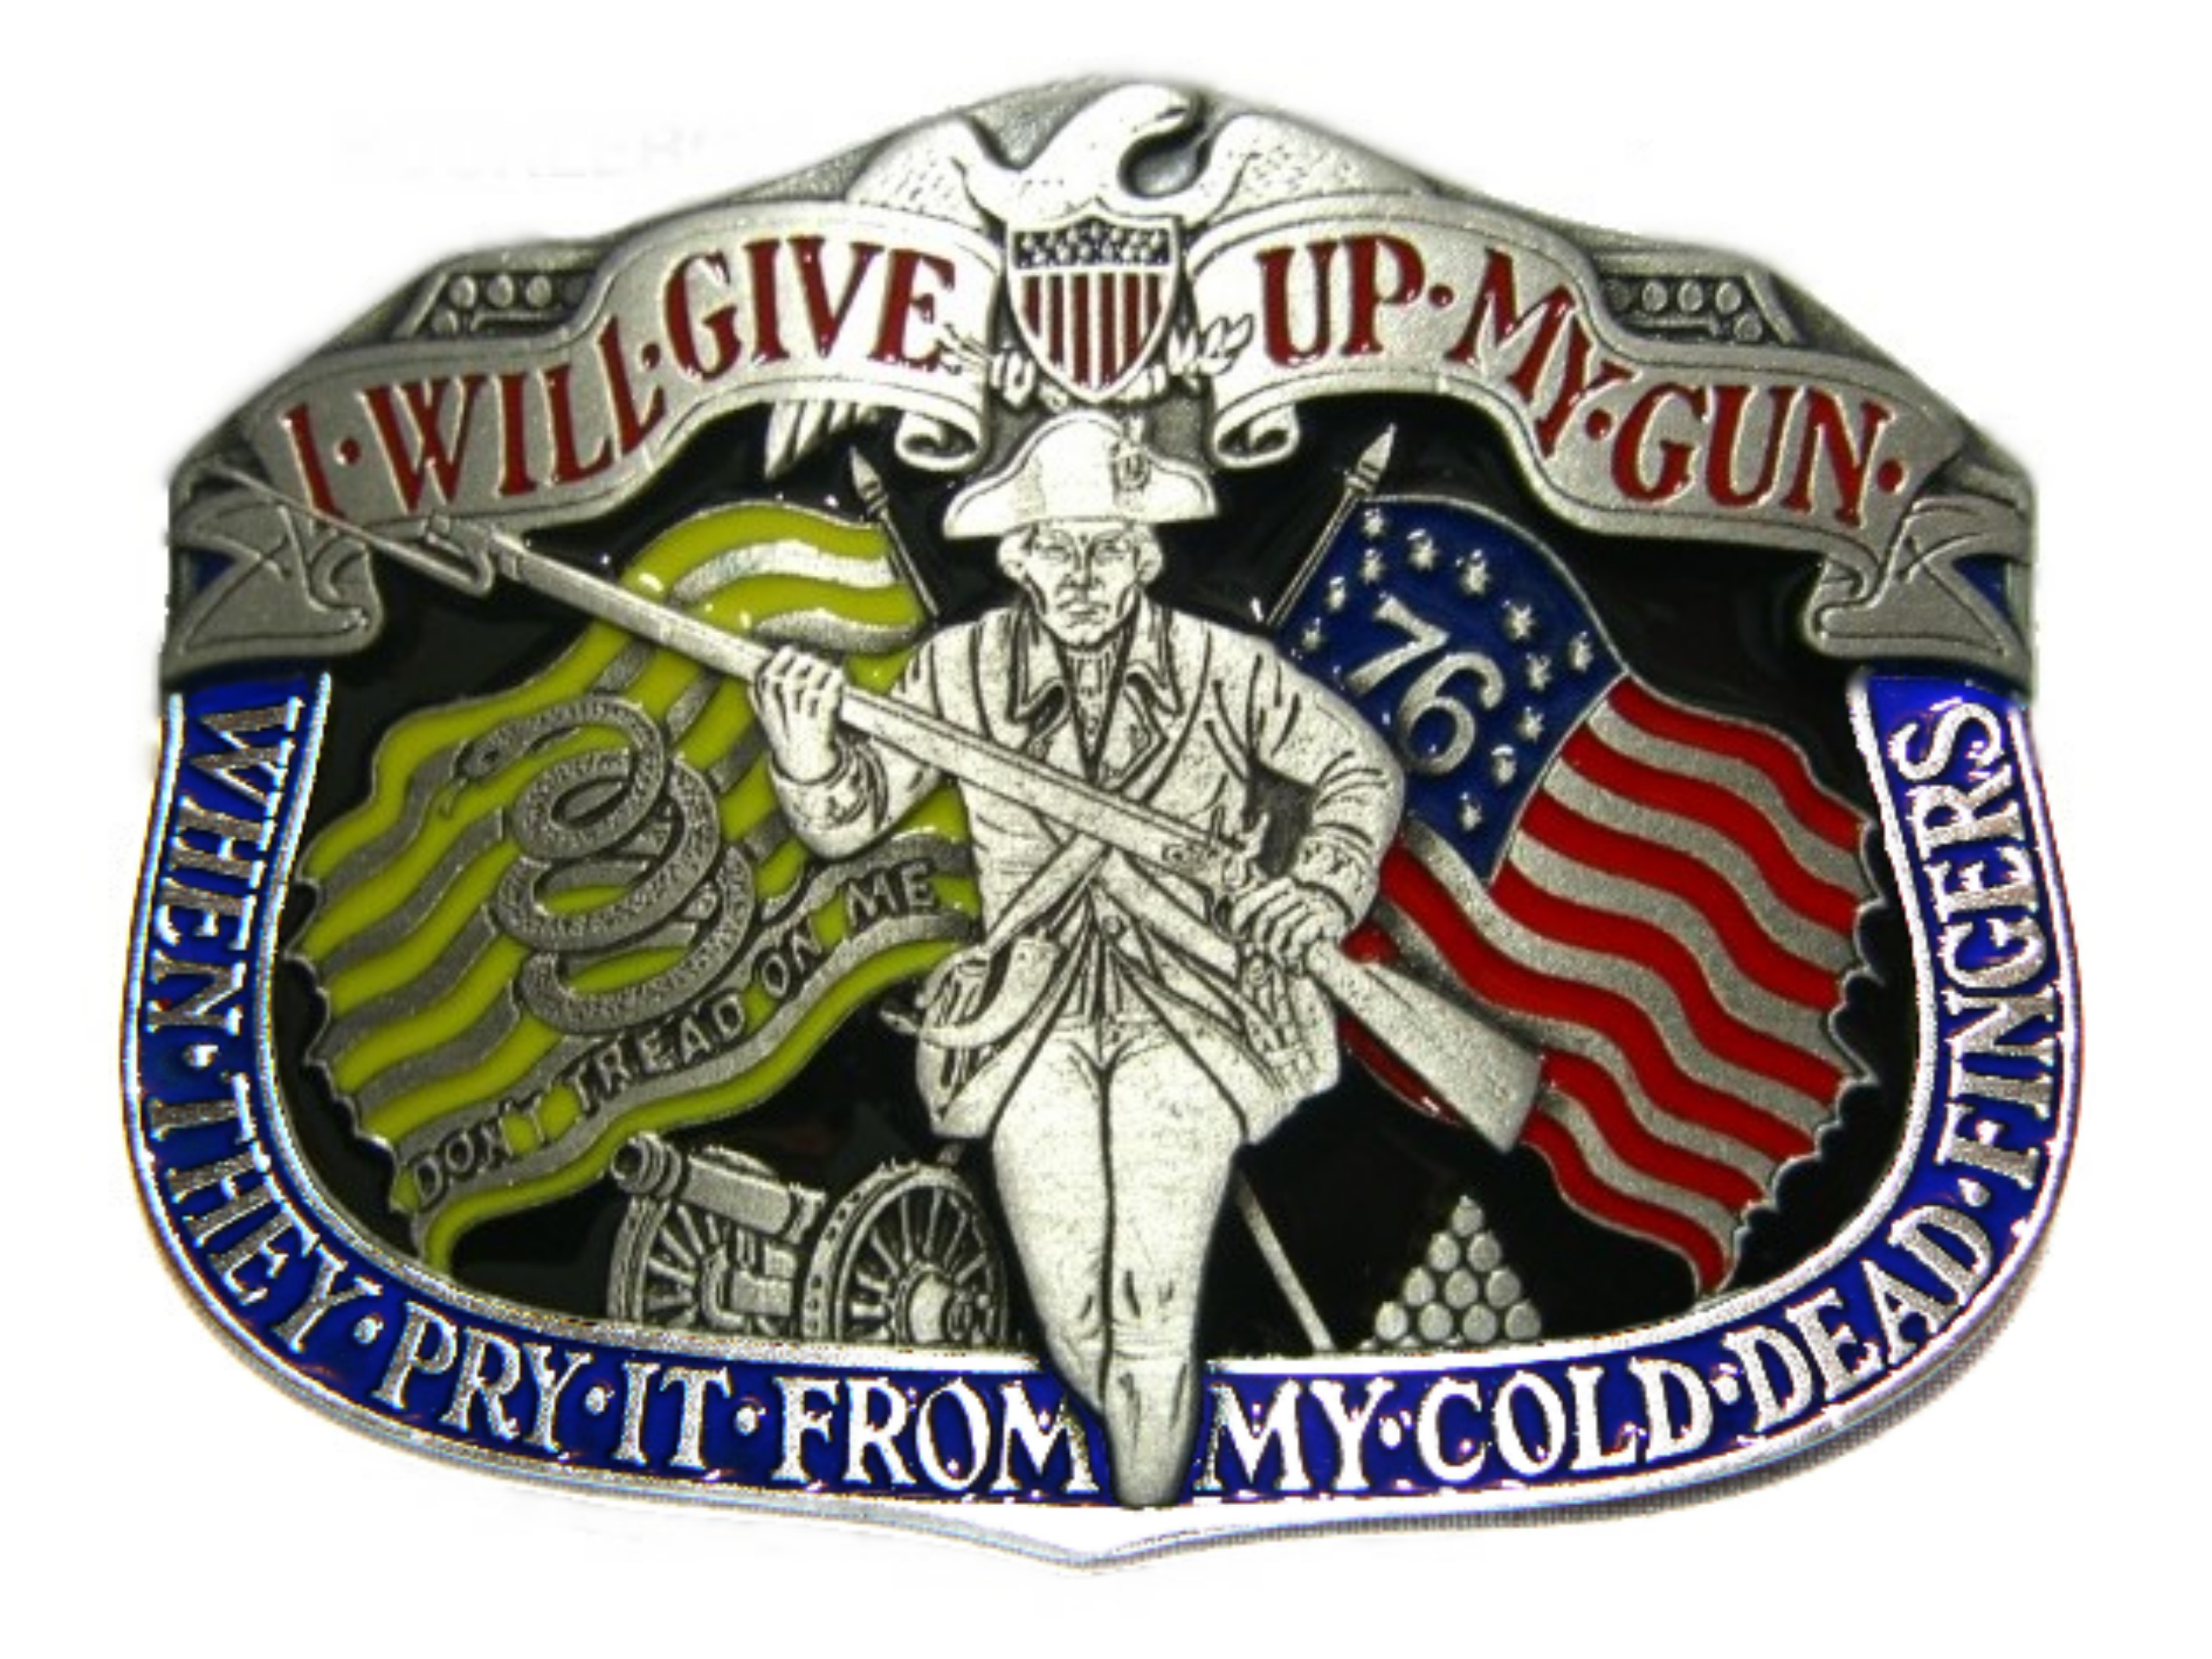 'Cold Dead Fingers' Buckle